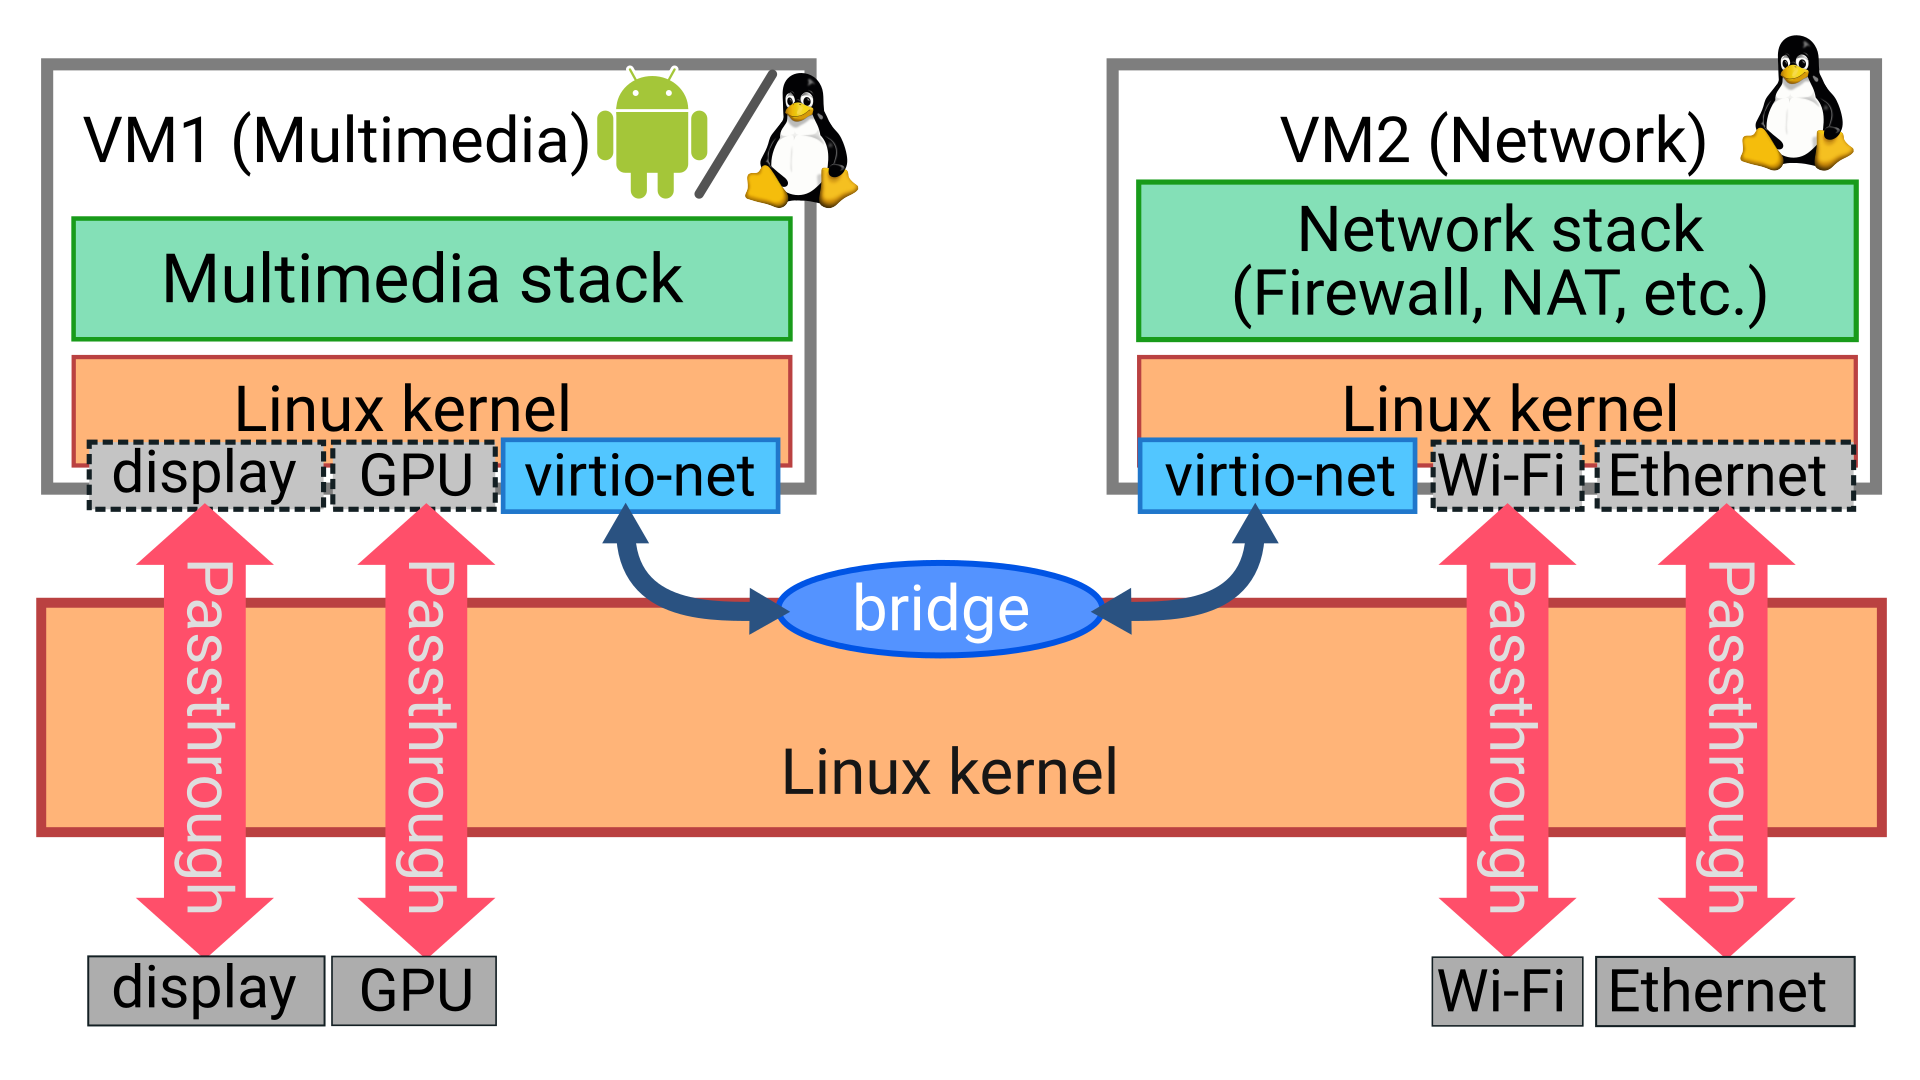 MMB virtualization architecture in two virtual machines with networking, streaming multimedia, android tv, linux